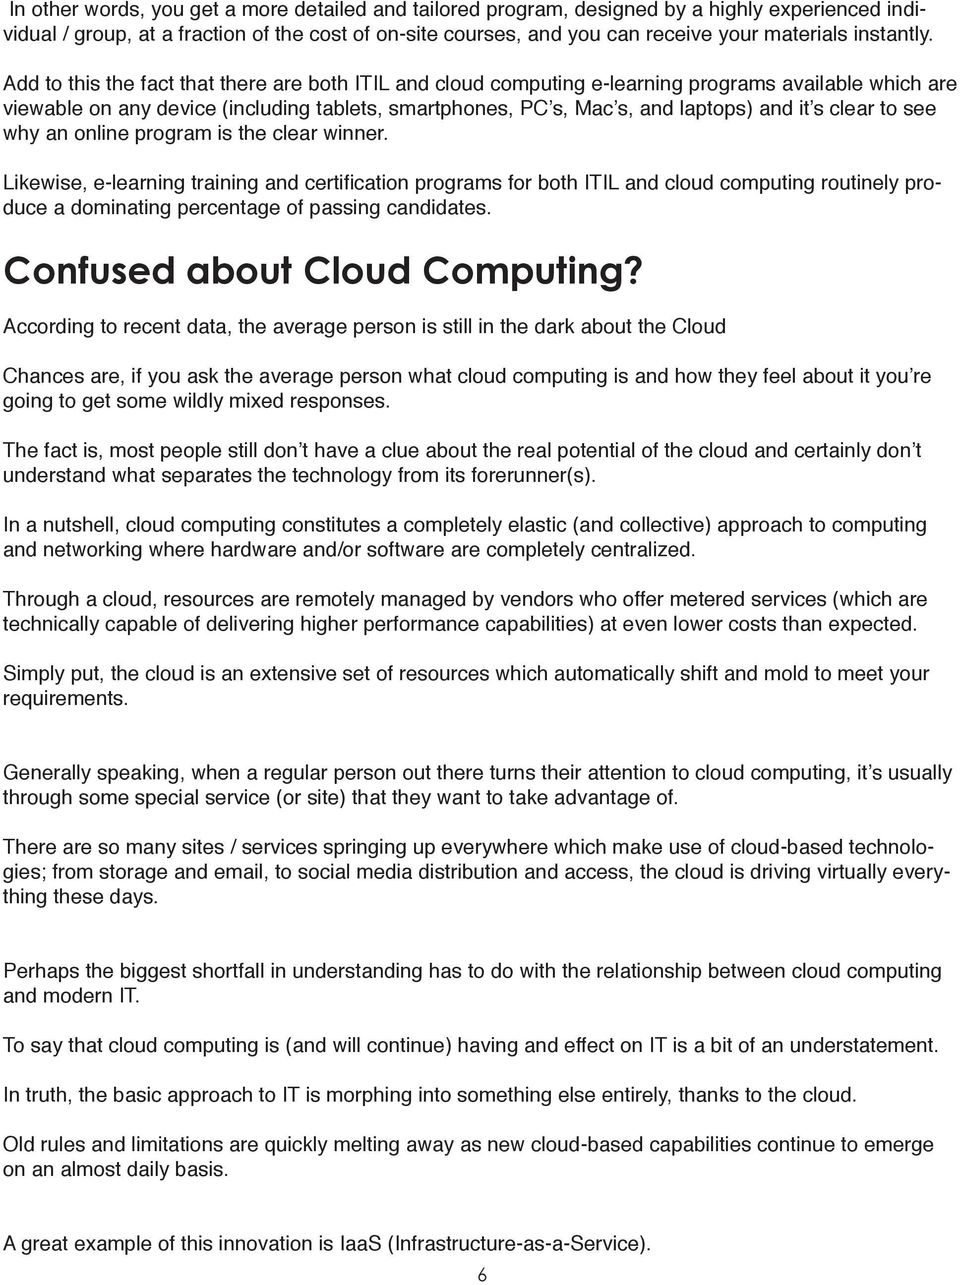 Add to this the fact that there are both ITIL and cloud computing e-learning programs available which are viewable on any device (including tablets, smartphones, PC s, Mac s, and laptops) and it s